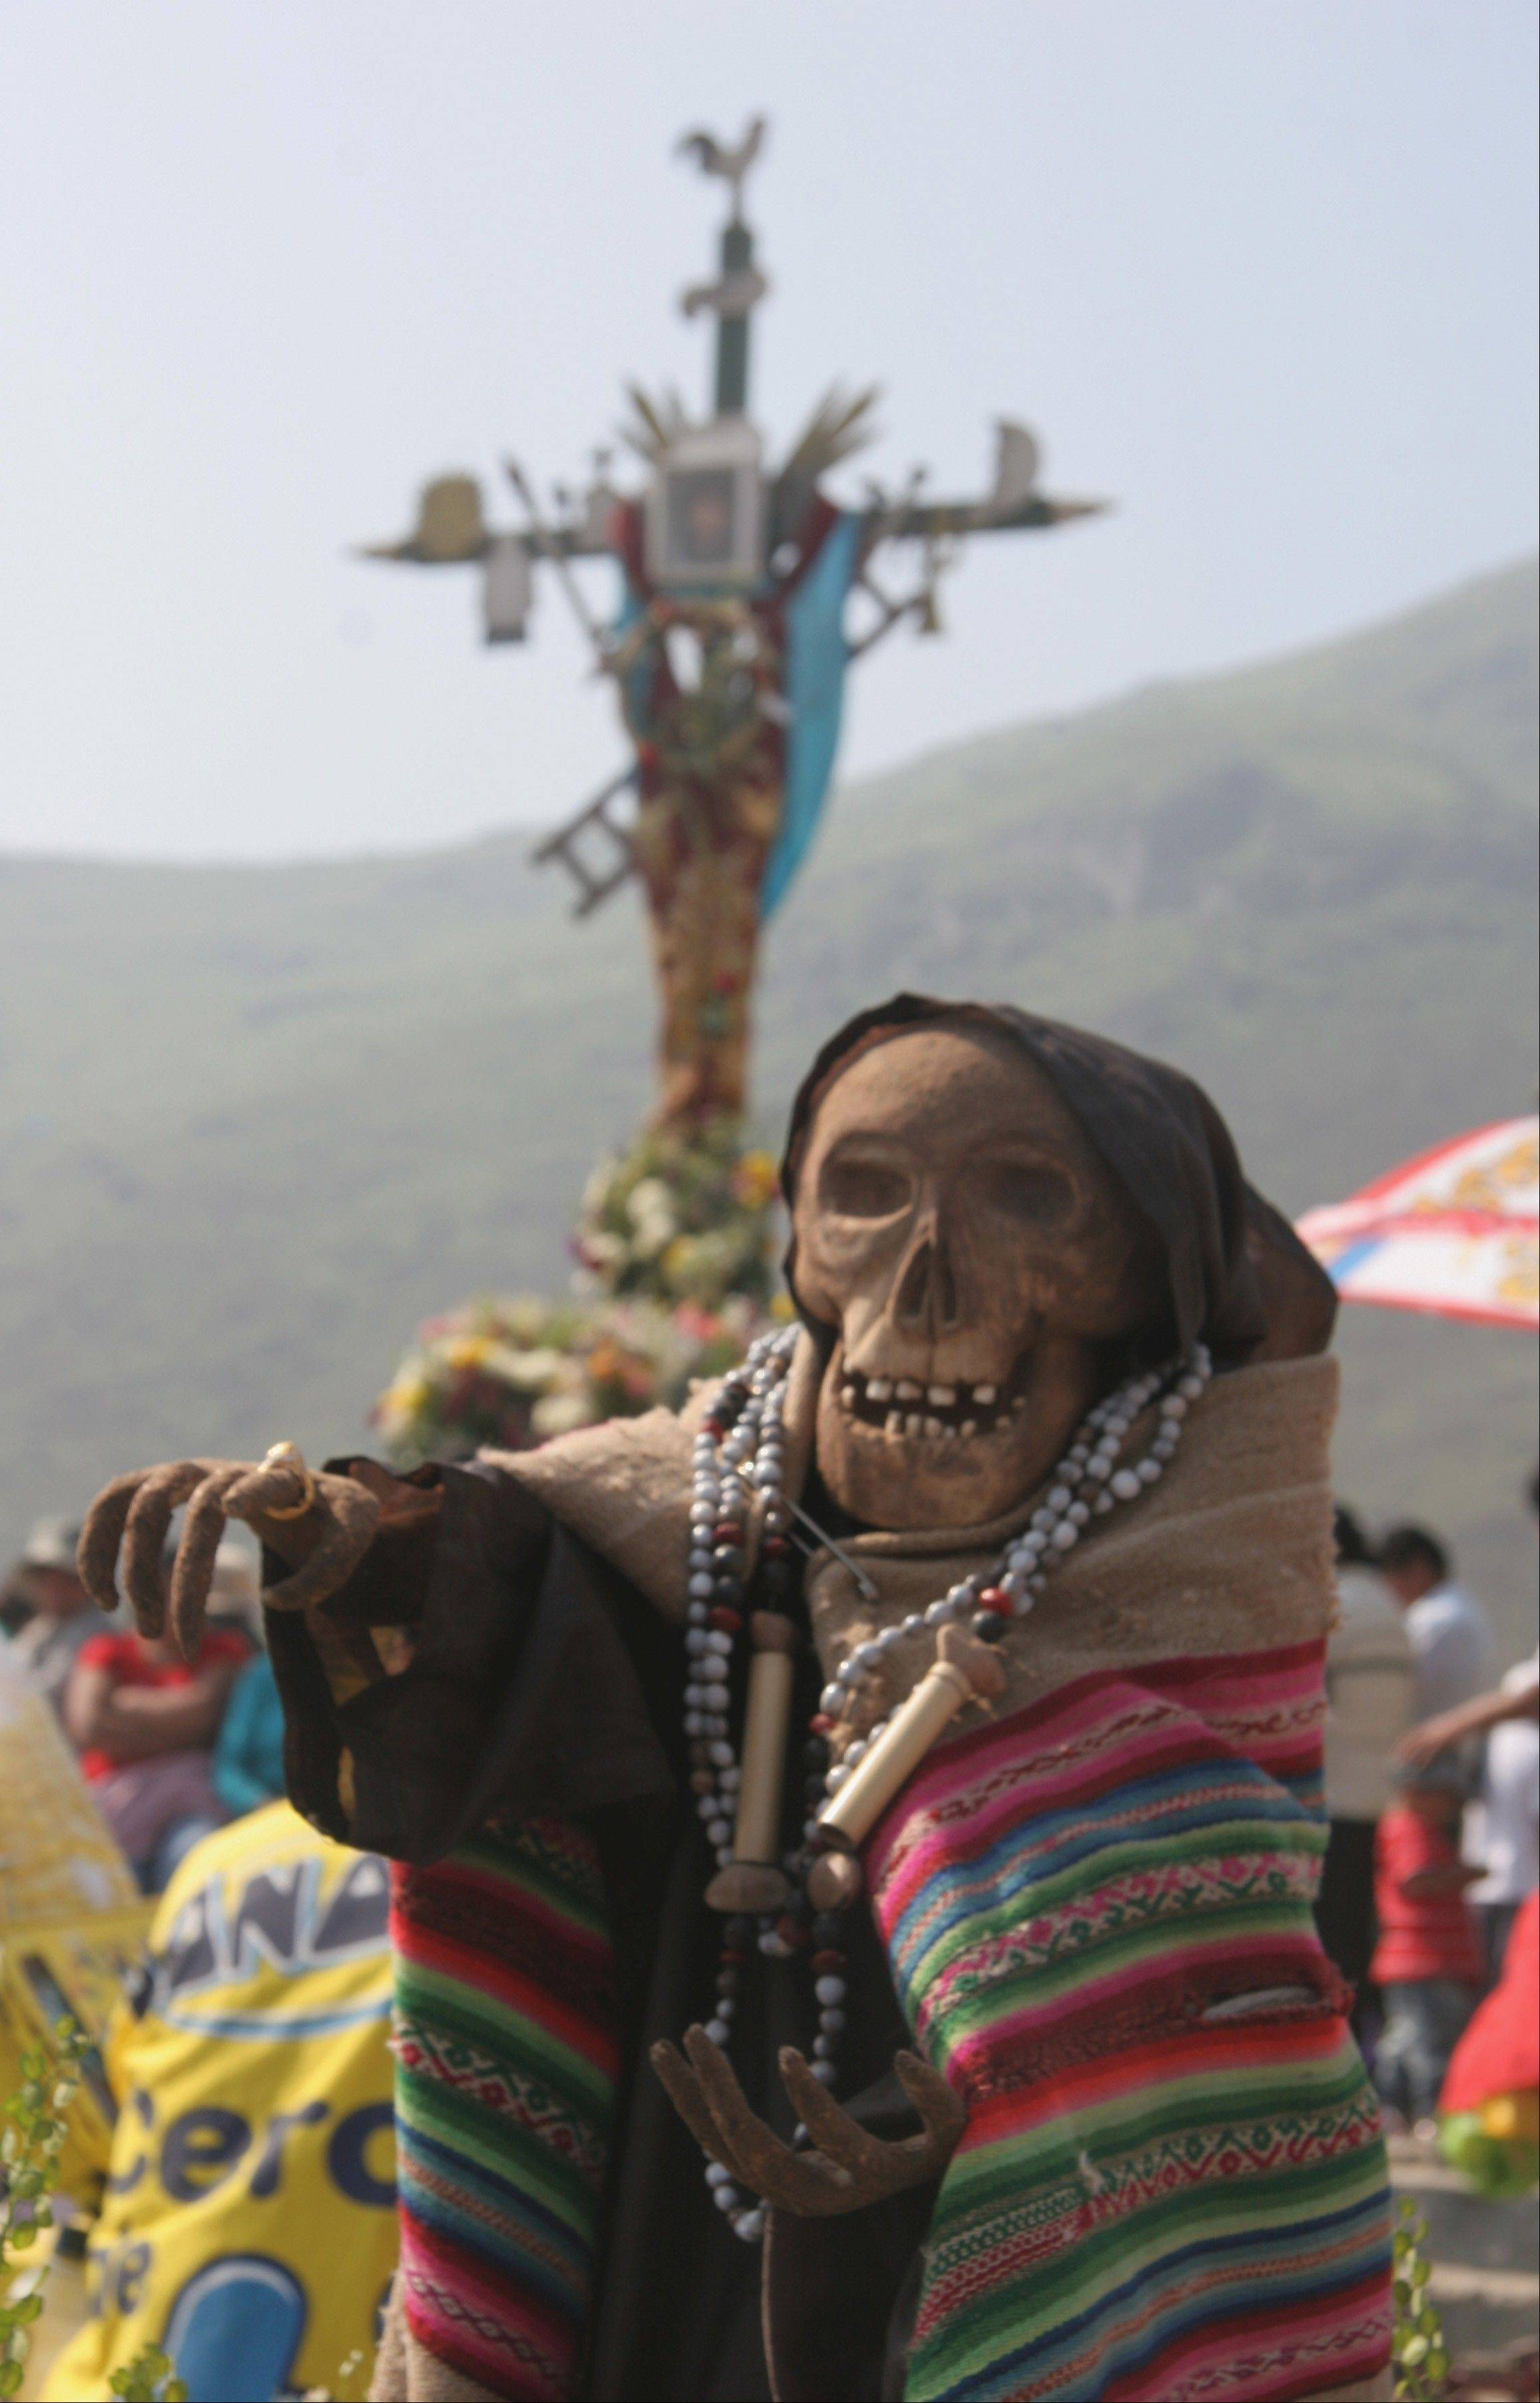 A procession honors Santa Muerte, the saint of death, during last year's Day of the Dead festival at the Cemetery of Nueva Esperanza in Villa Maria del Triunfo in Lima, Peru.